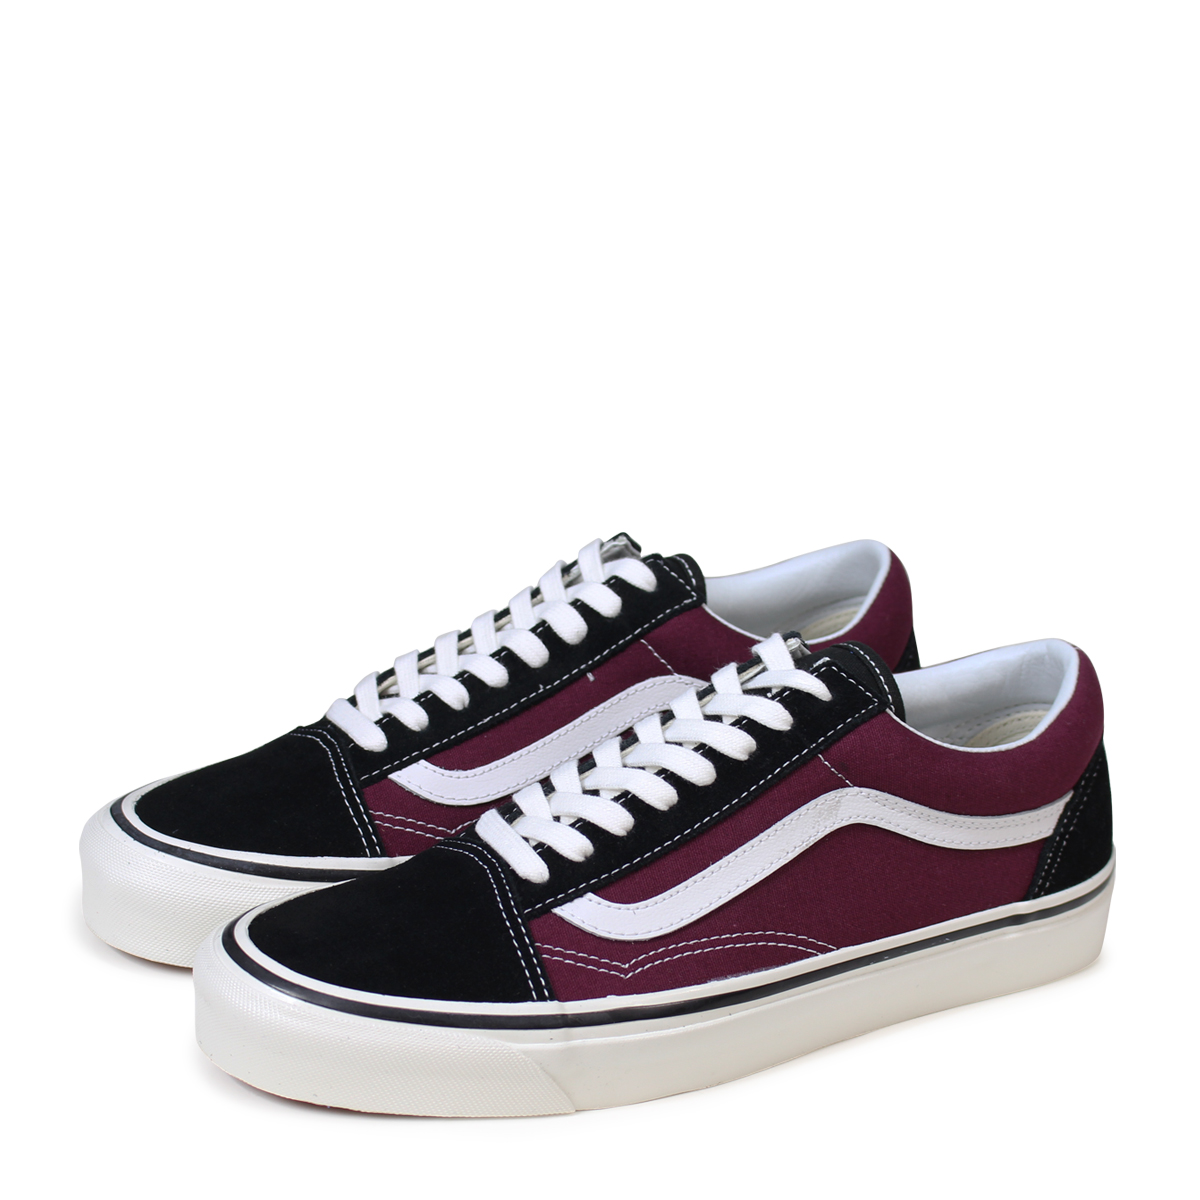 835acc6ae4 VANS OLD SKOOL 36 DX old school sneakers men vans station wagons  VN0A38G2R1U black  load planned Shinnyu load in reservation product 5 30  containing   185